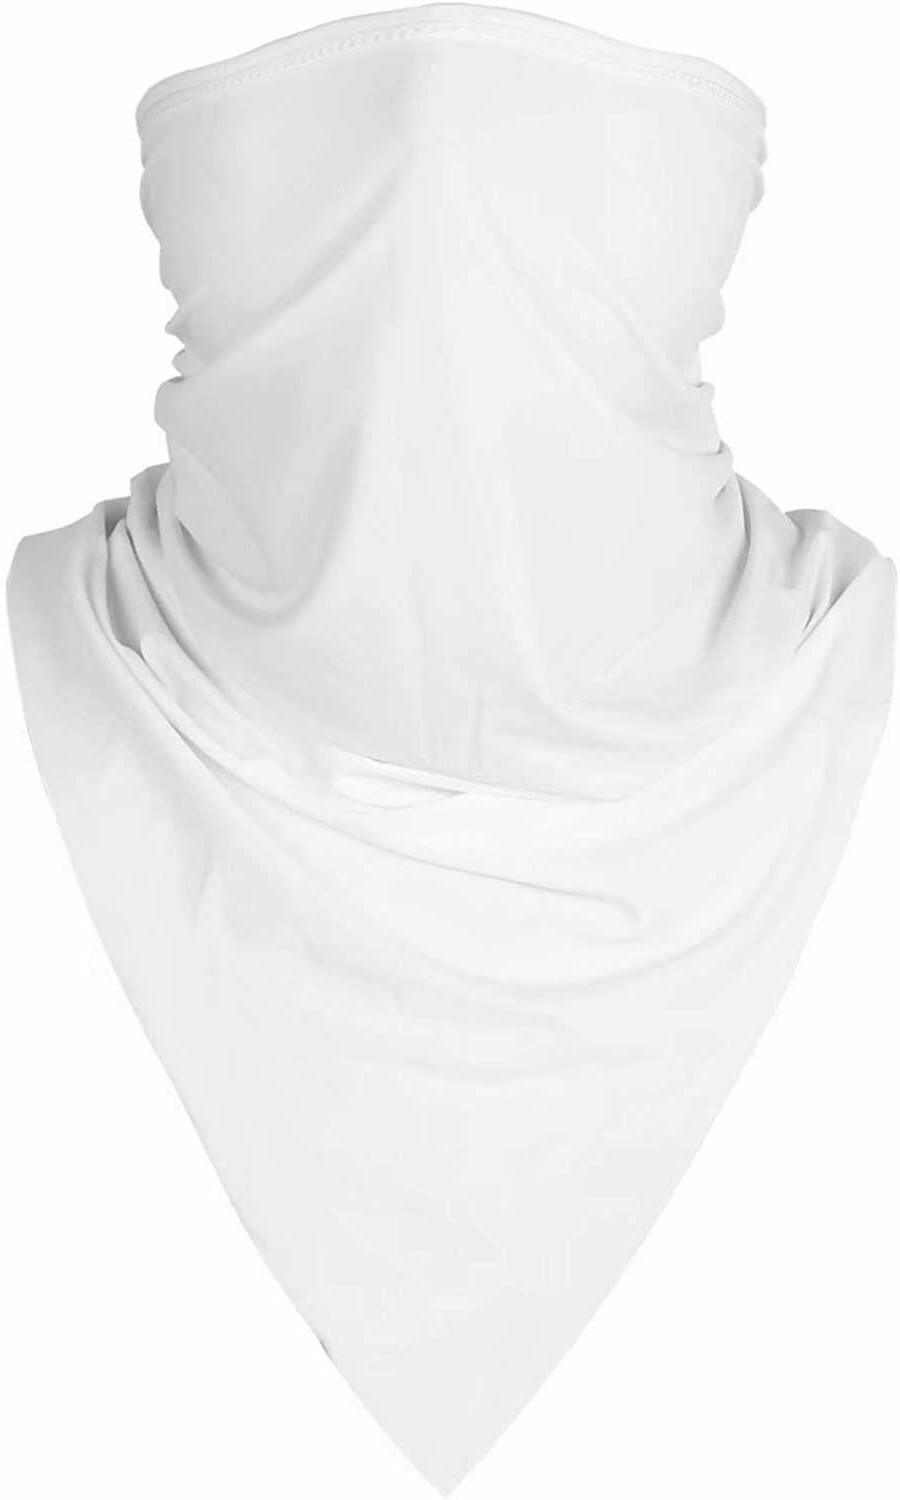 Paisley Outdoor Face Mask By Indie Ridge Microfiber Polyeste